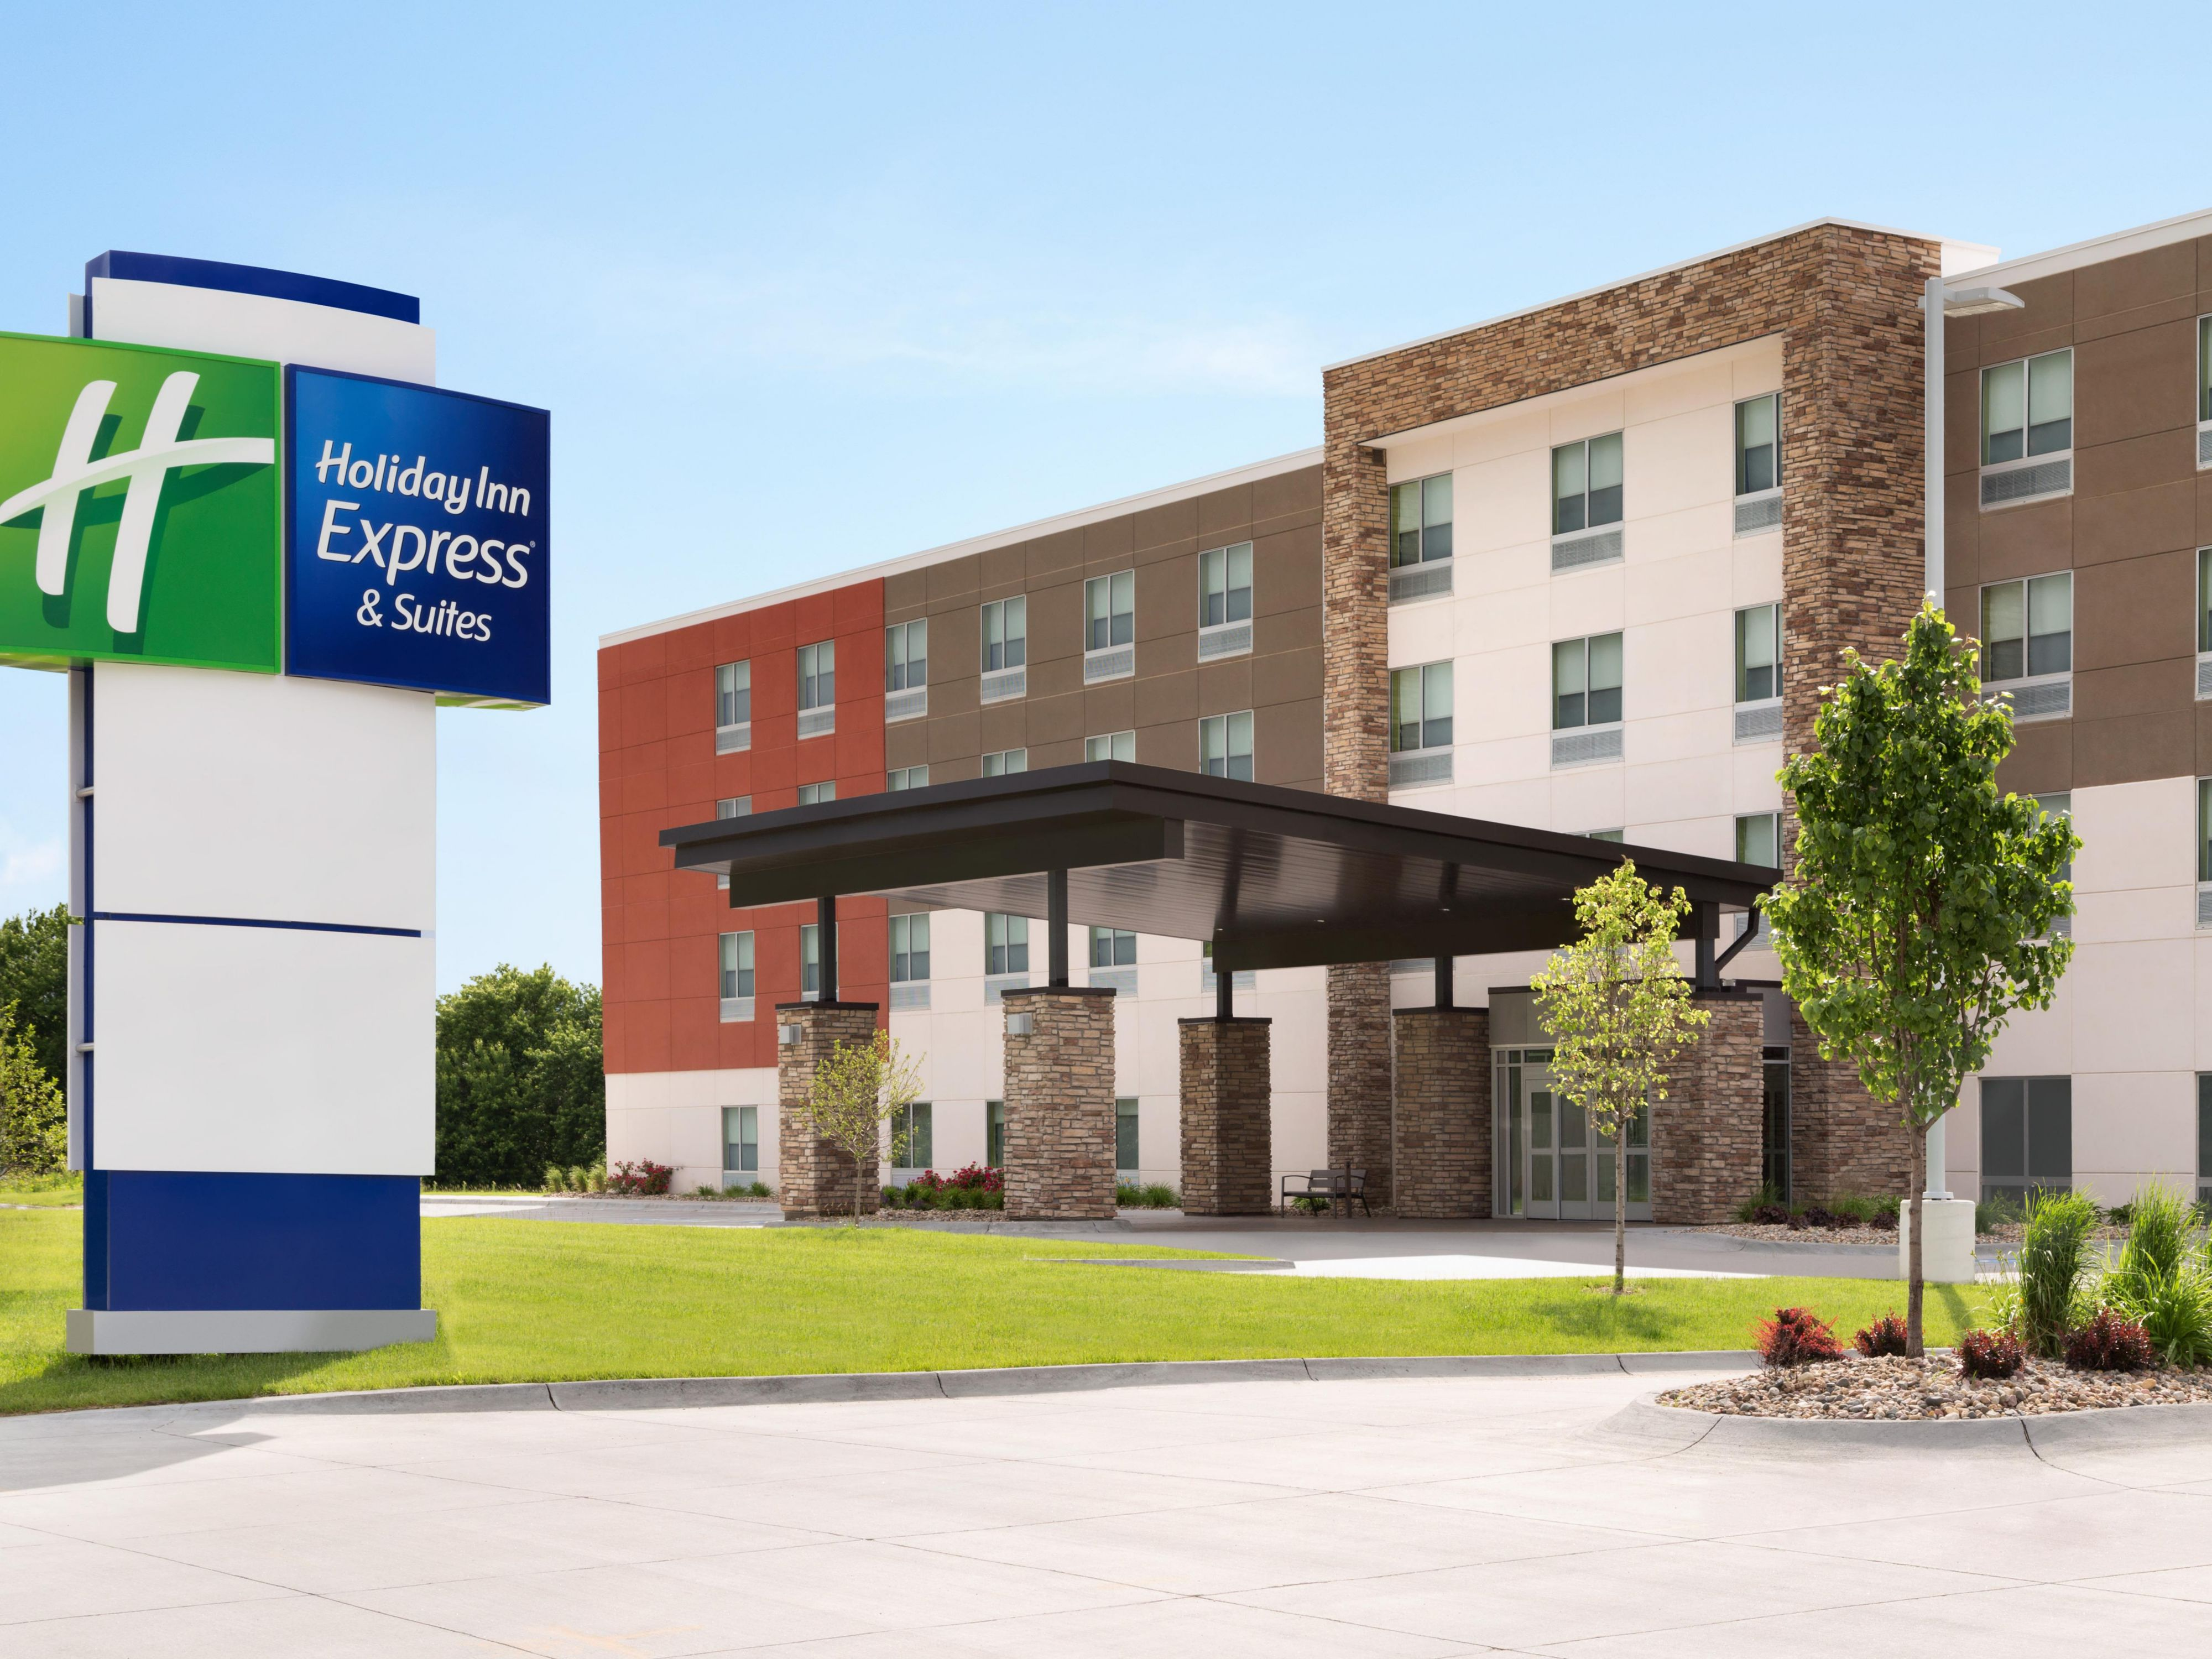 Holiday Inn Express Stone Mountain Hotels | Budget Hotels in